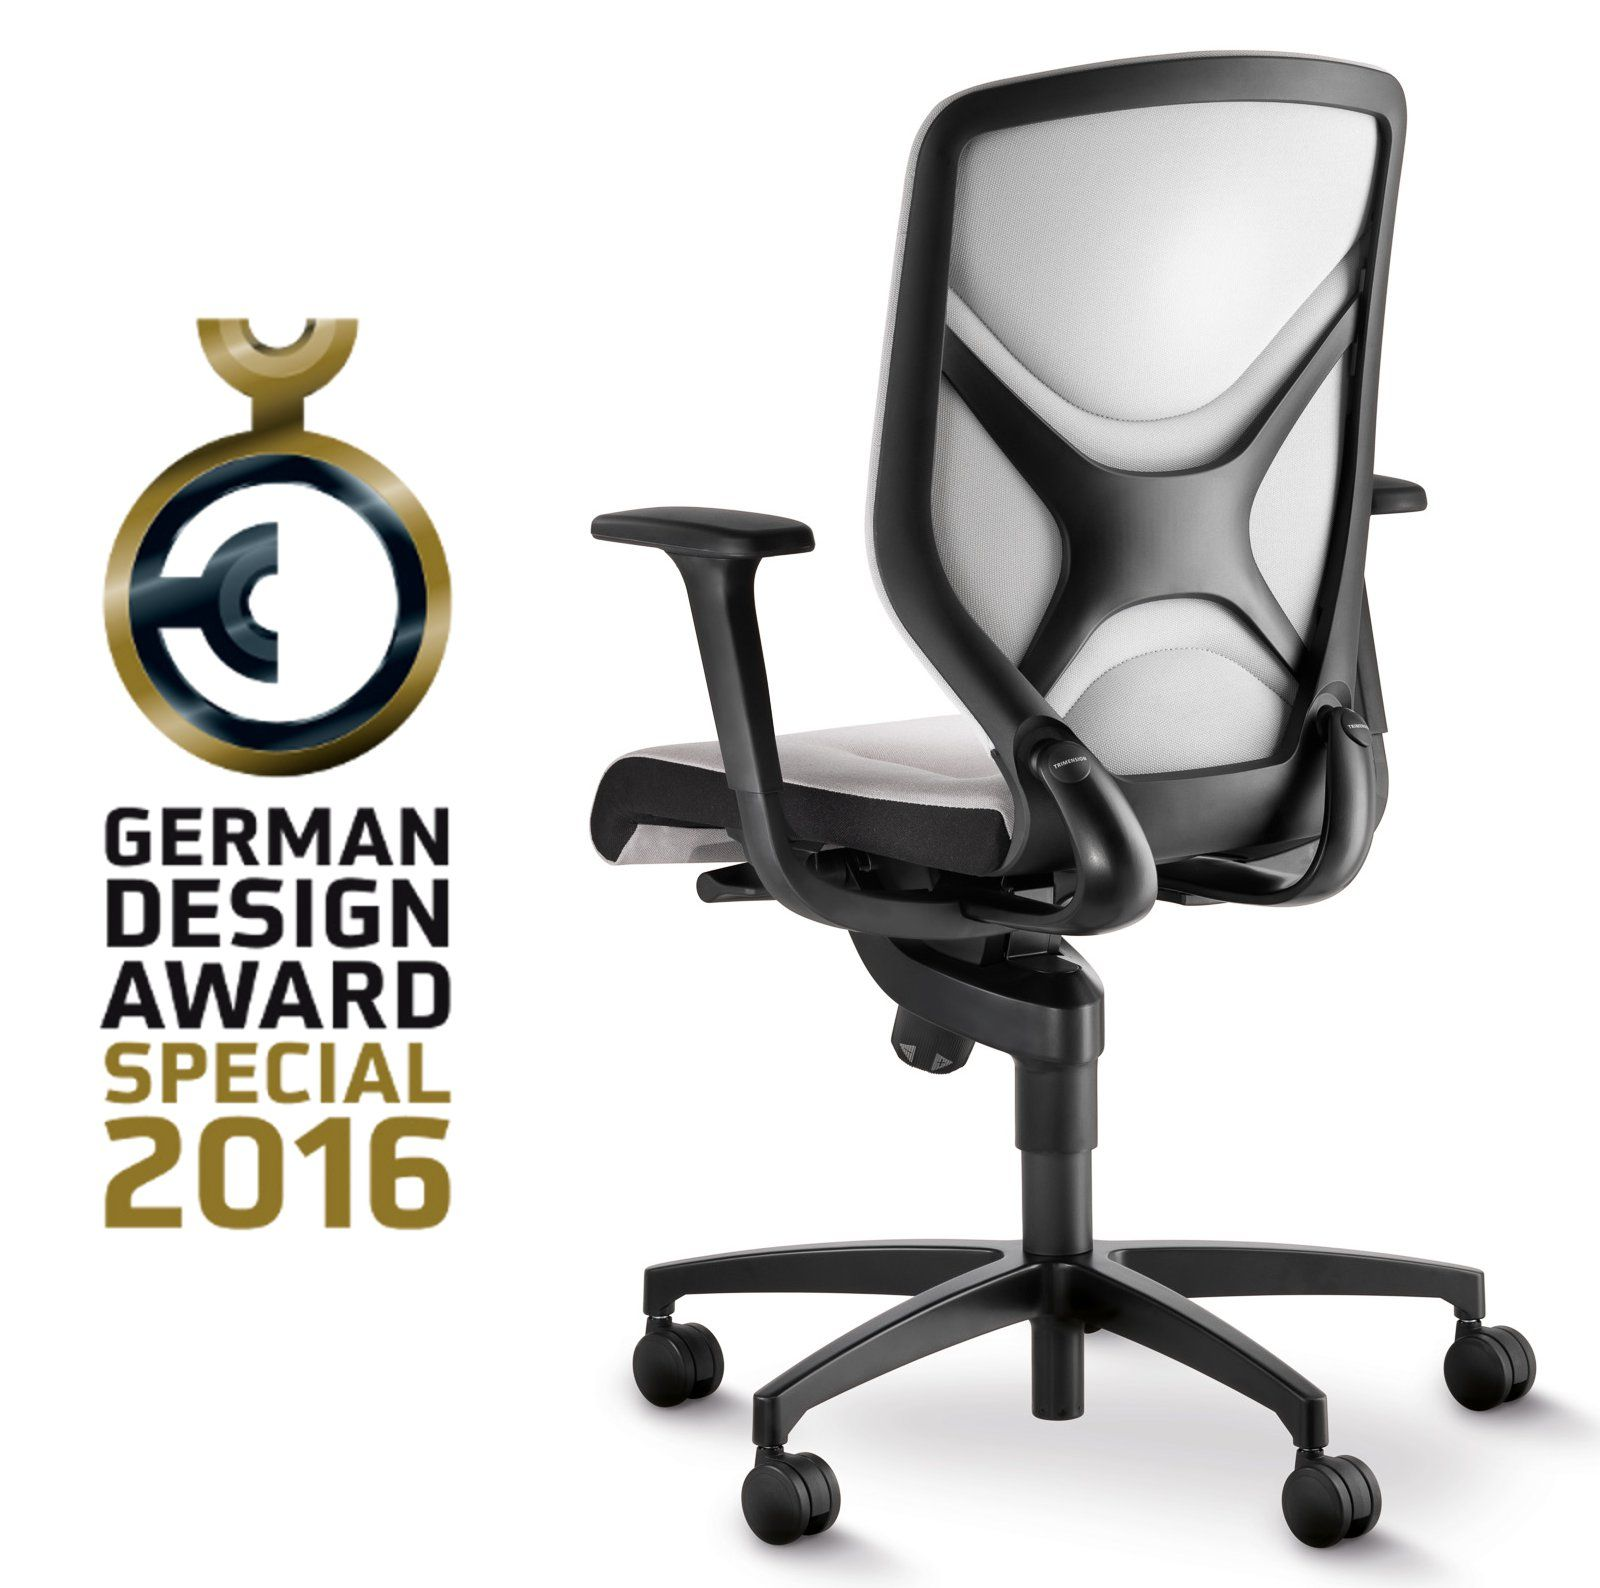 notre dame office chair folding for bedroom awarded with the german design award 2016 special mention